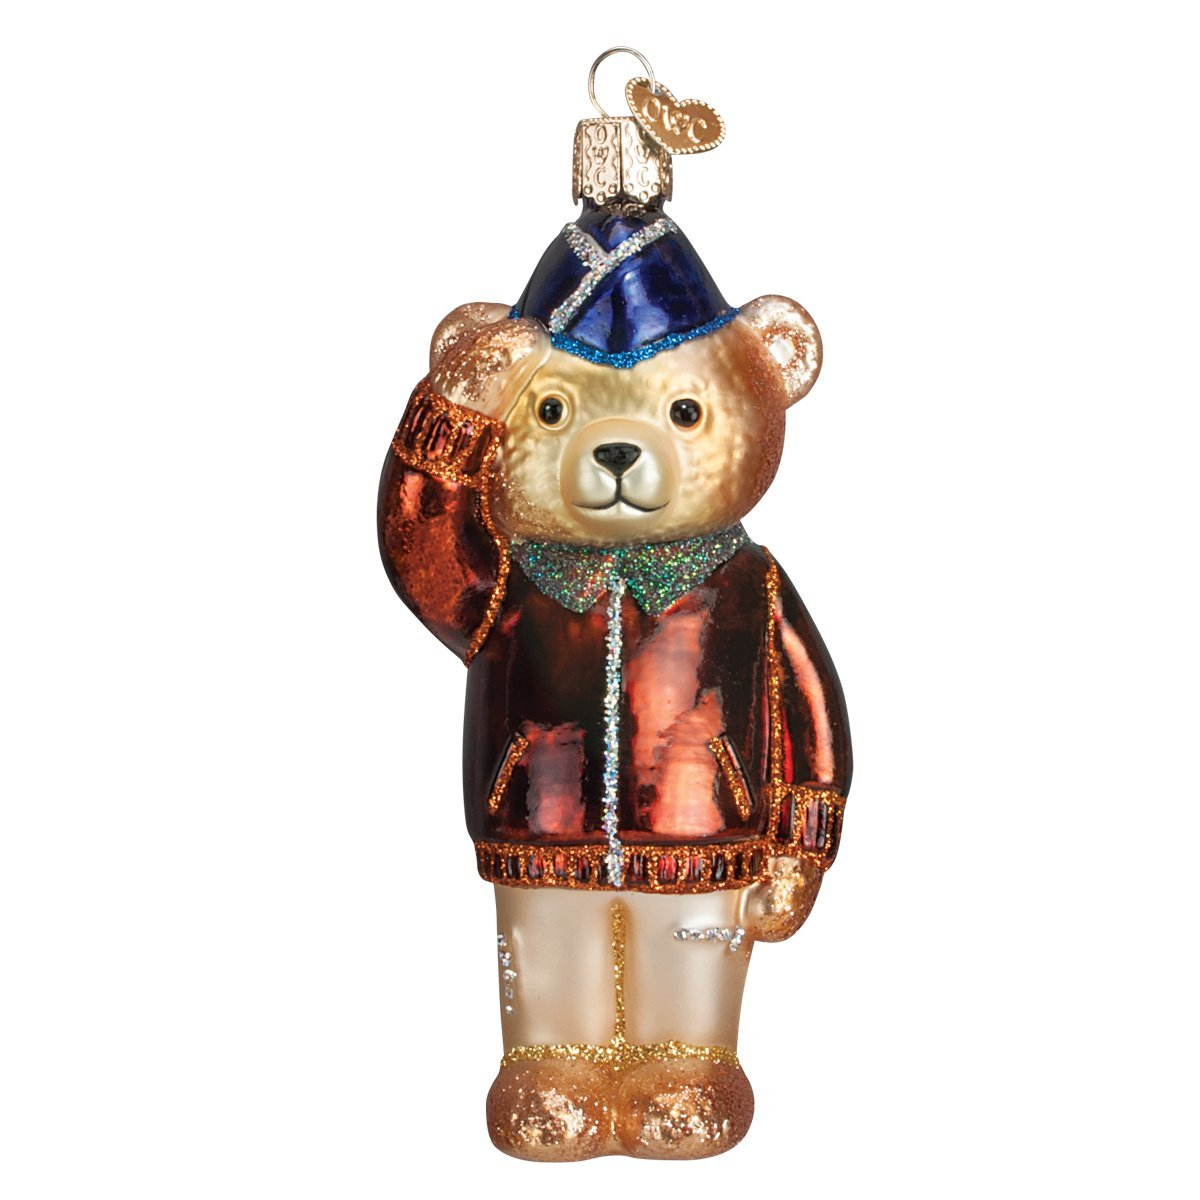 Old World Christmas Ornaments: Air Force Bear Glass Blown Ornaments for Christmas Tree